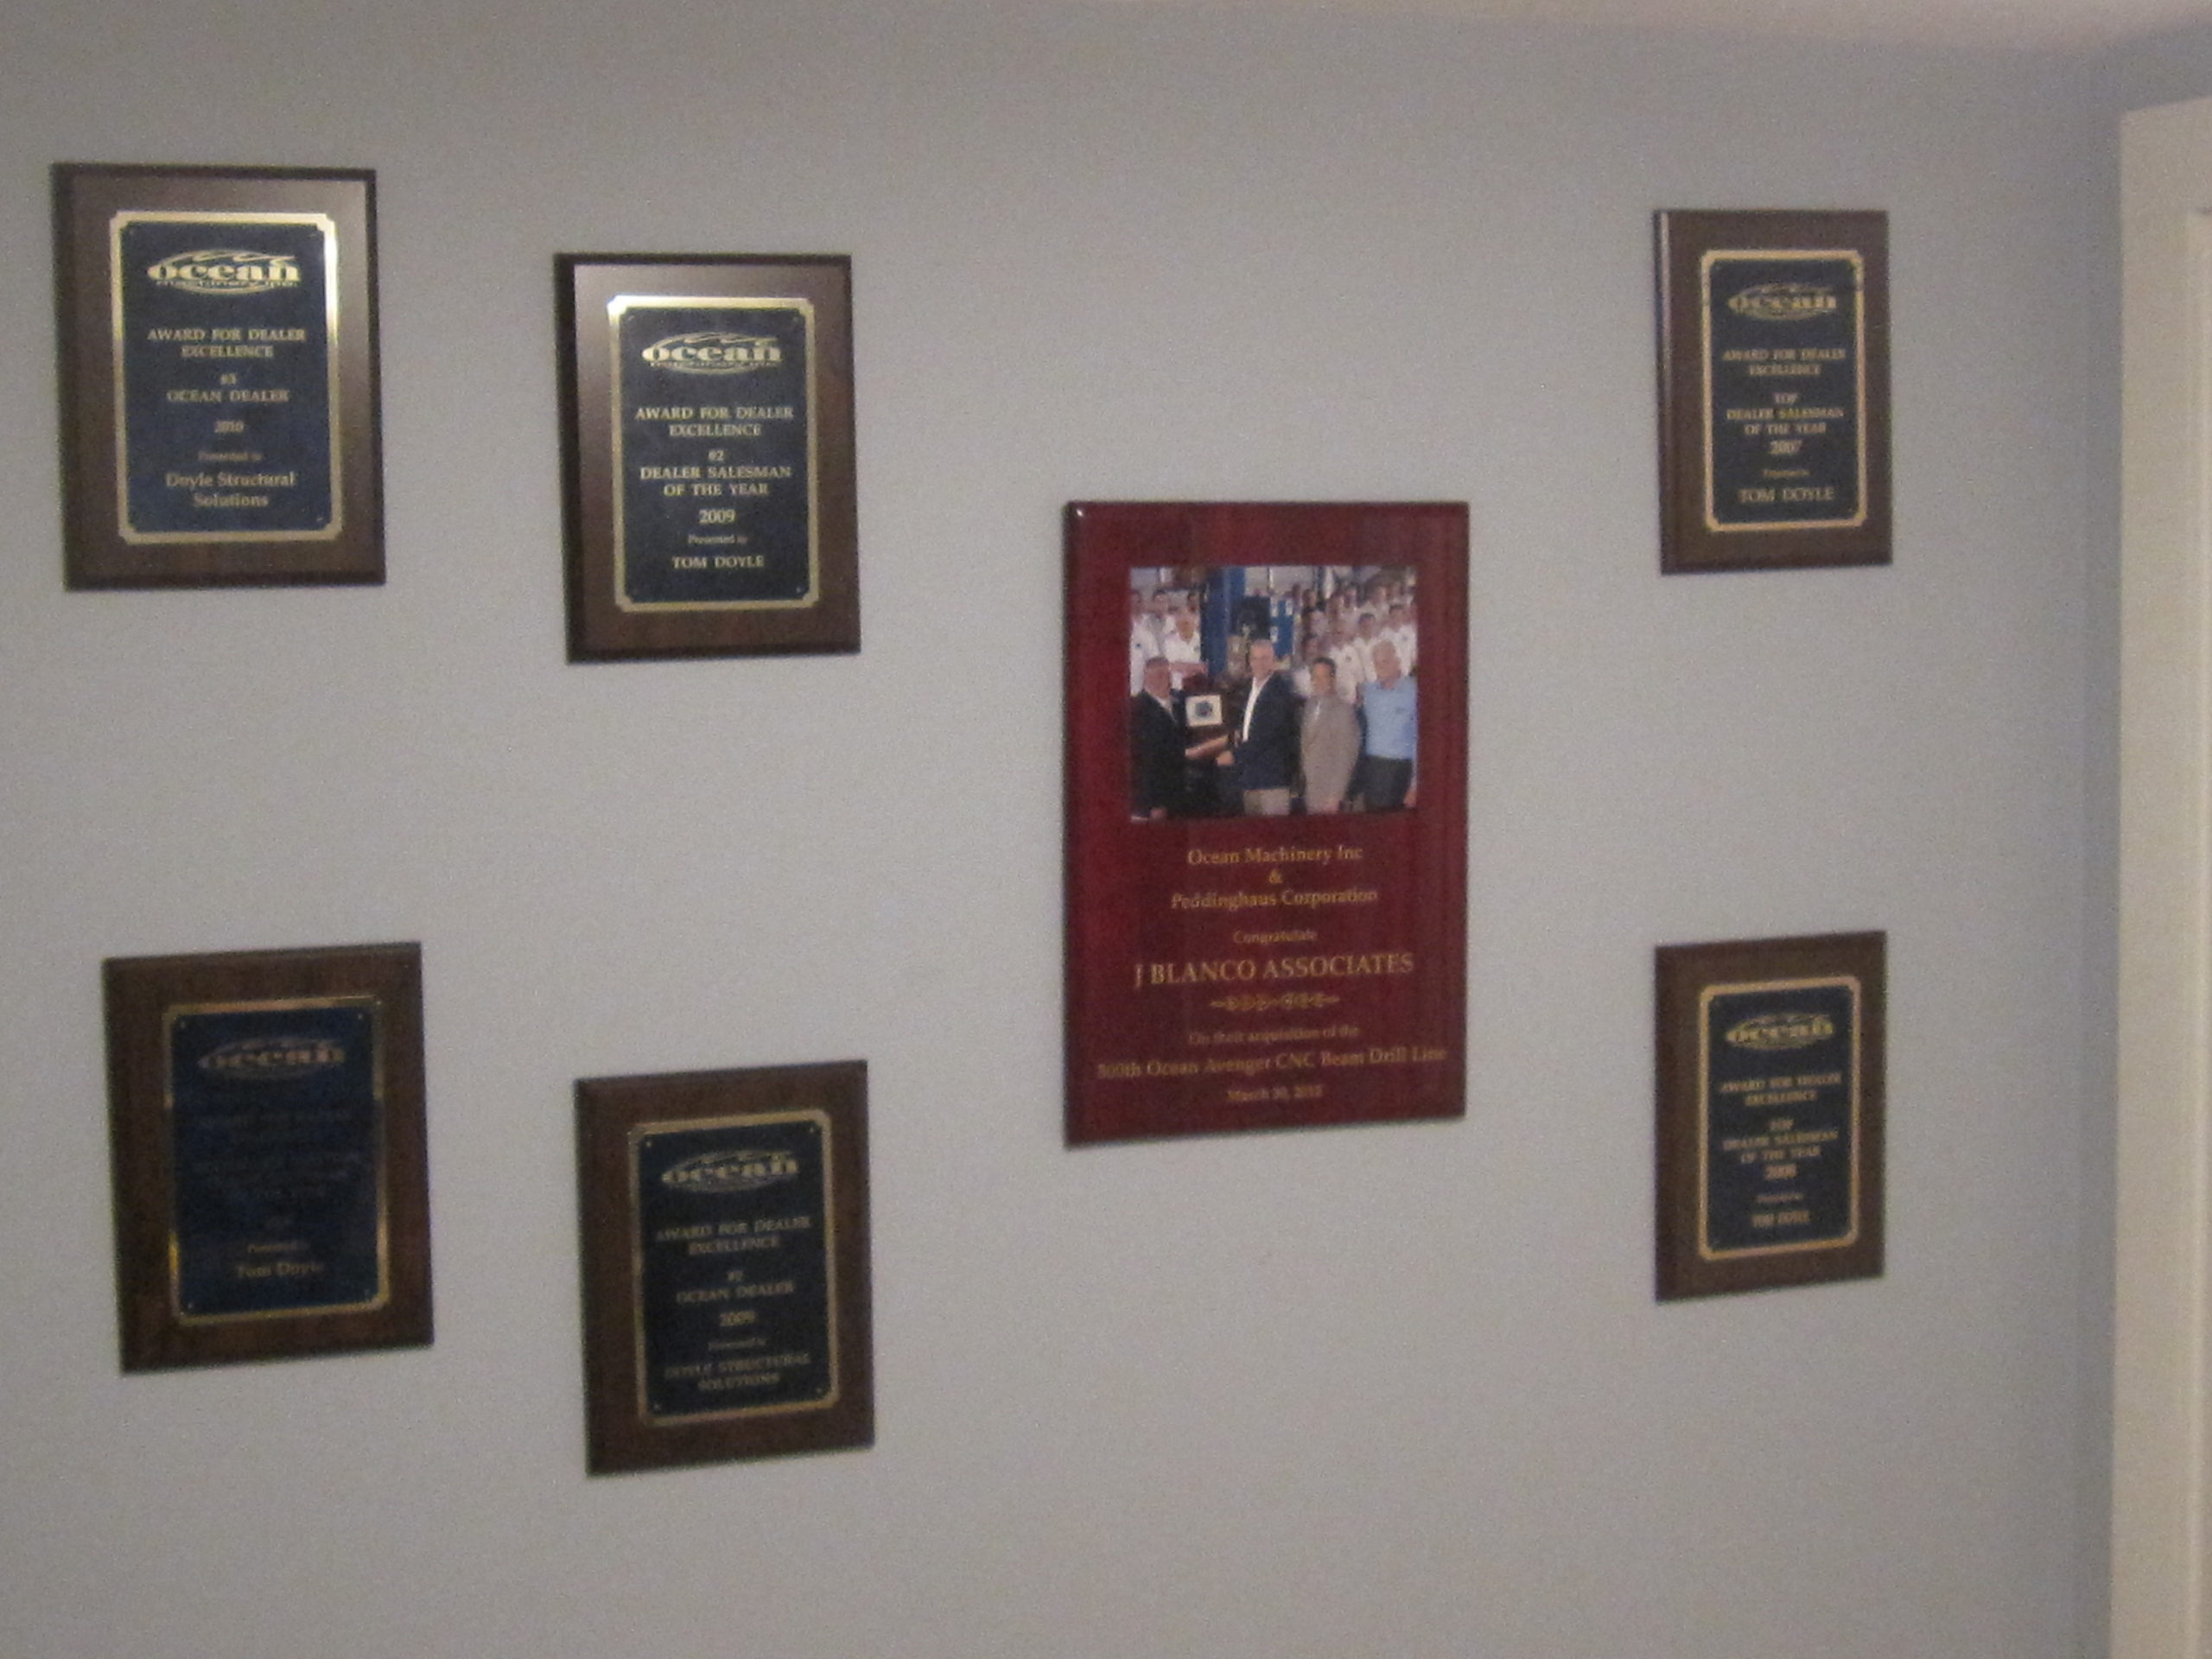 Doyle Structural Solutions is a TOP Dealer! Look at all those Ocean Machinery